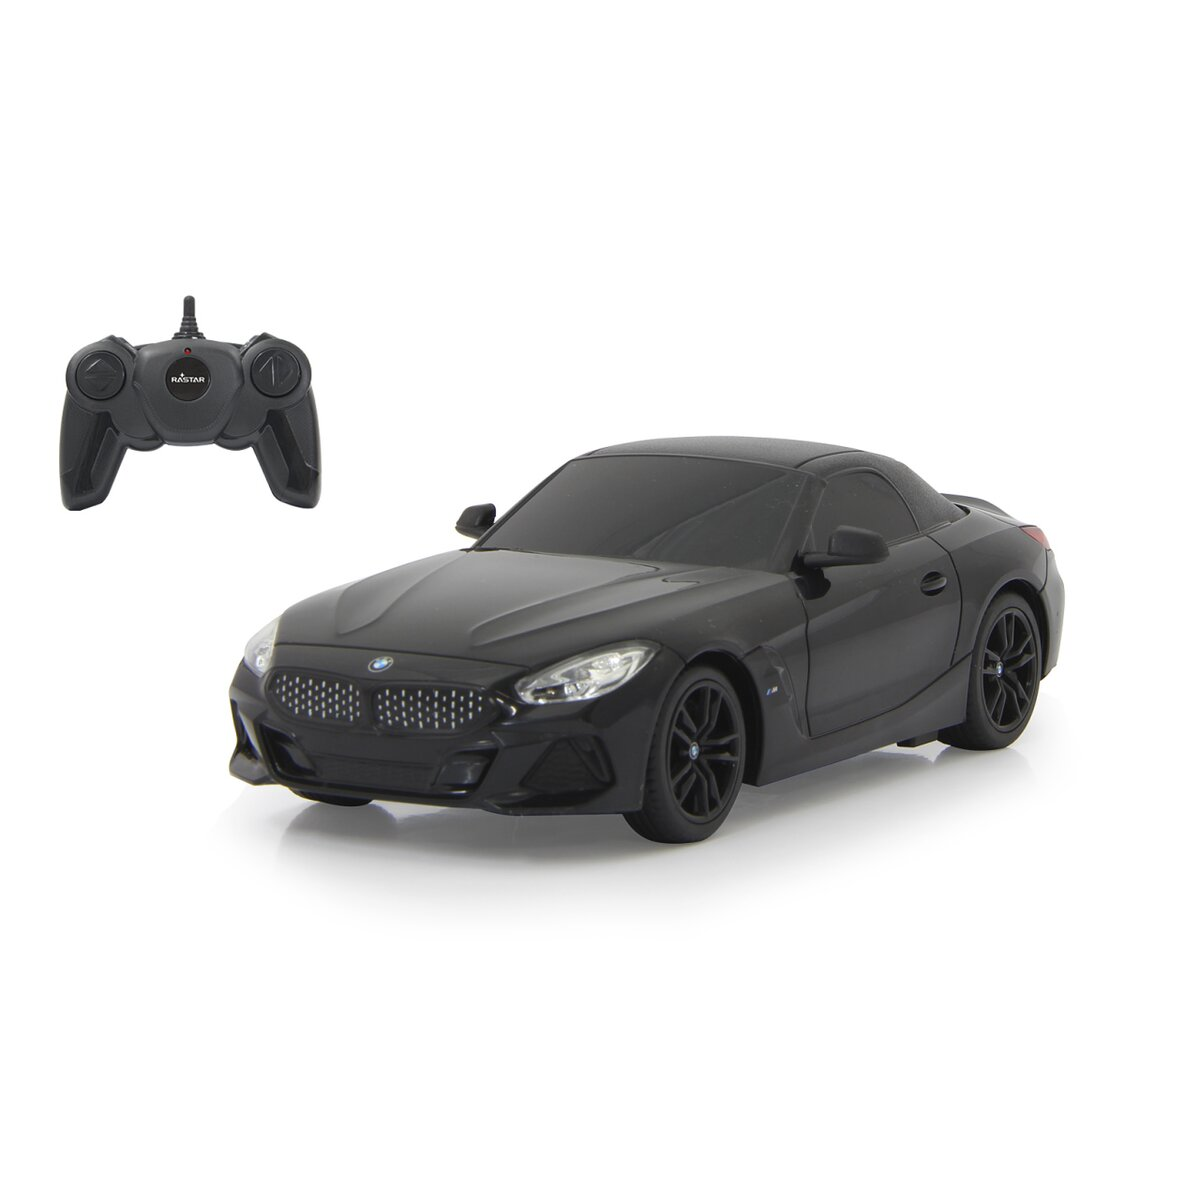 Jamara BMW Z4 Roadster 1:24 black 27MHz